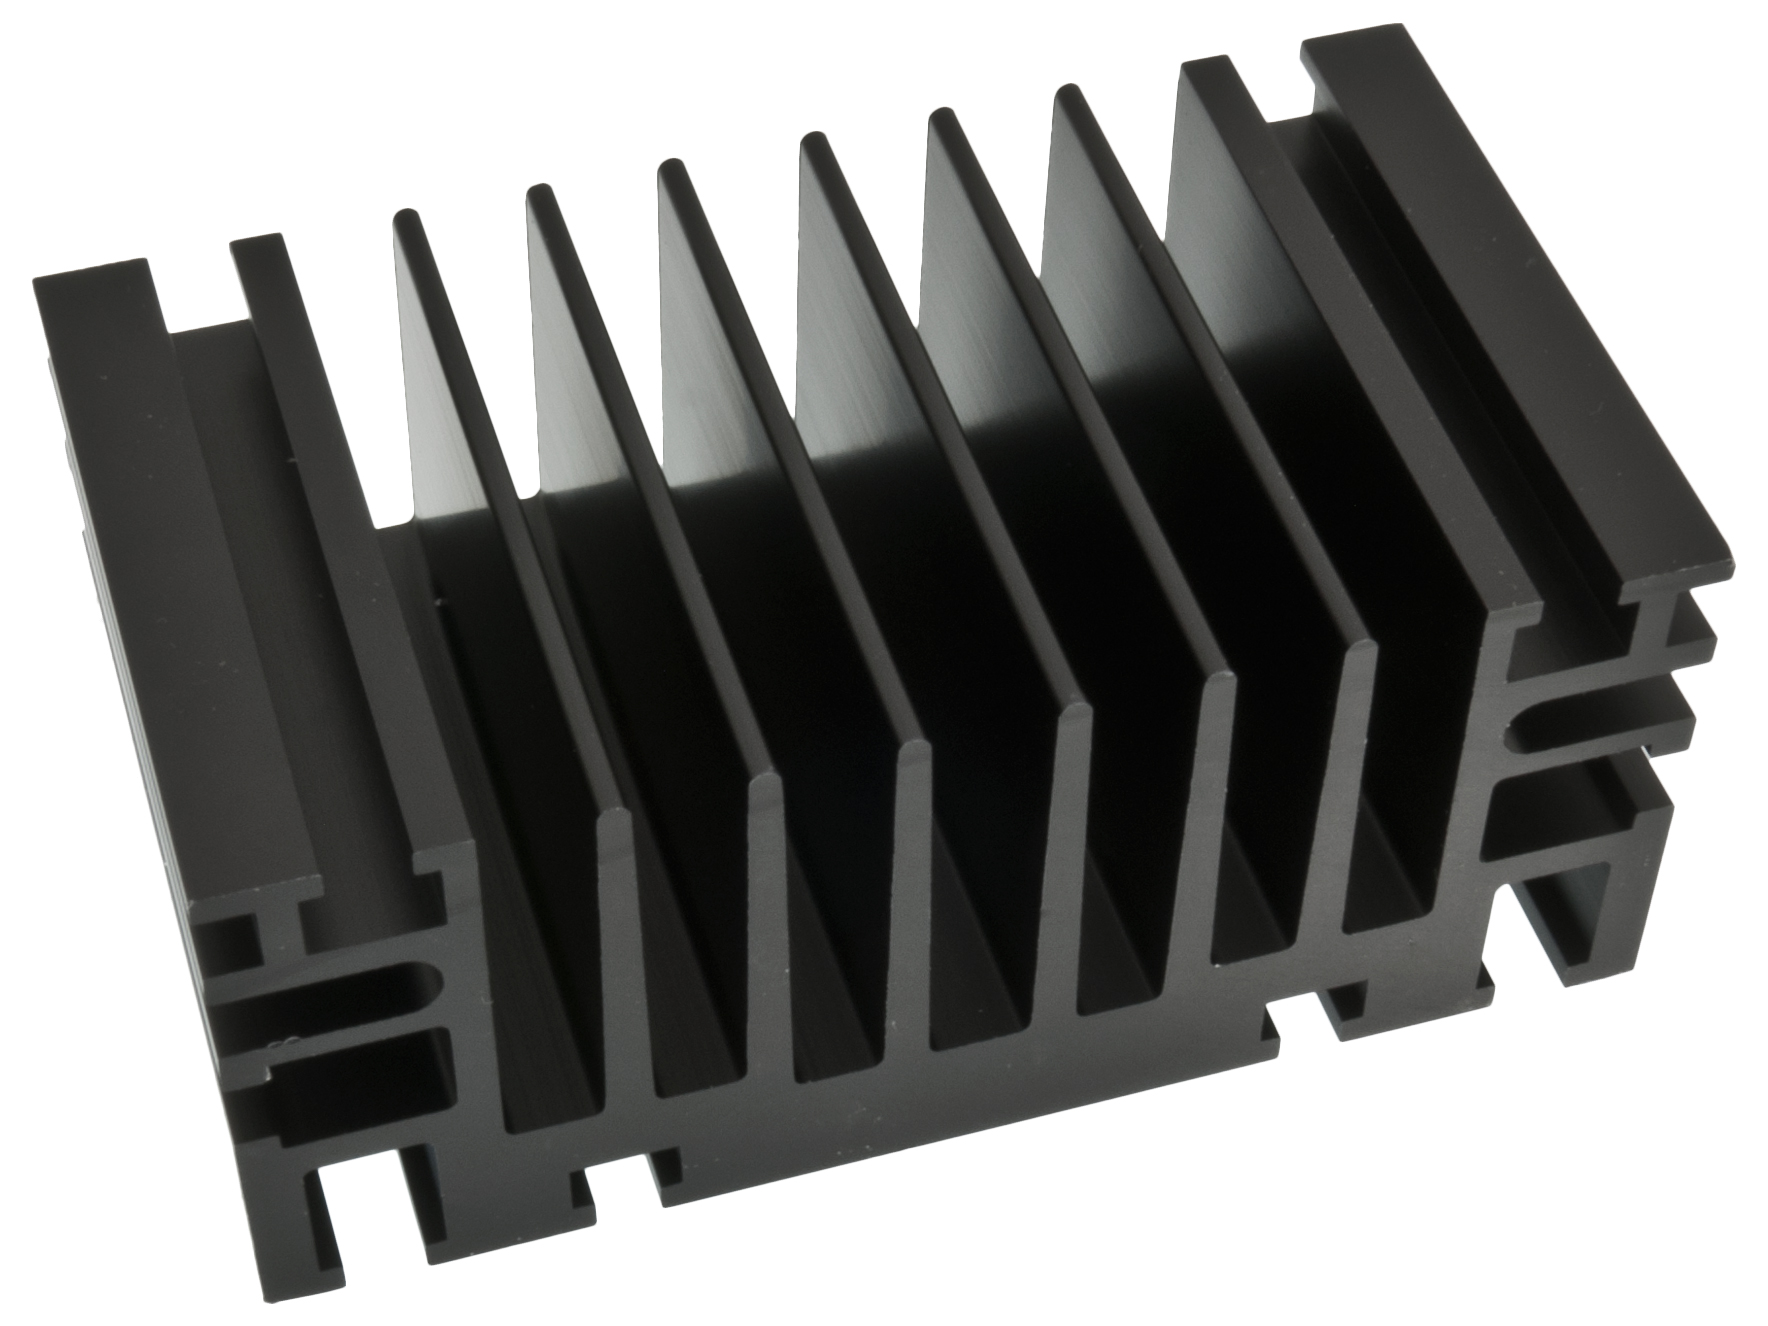 Buy Heatsink For Solid State Relay Ssr 40 At The Right Price In A Circuit Is Not Everything Pcb Engineering Home